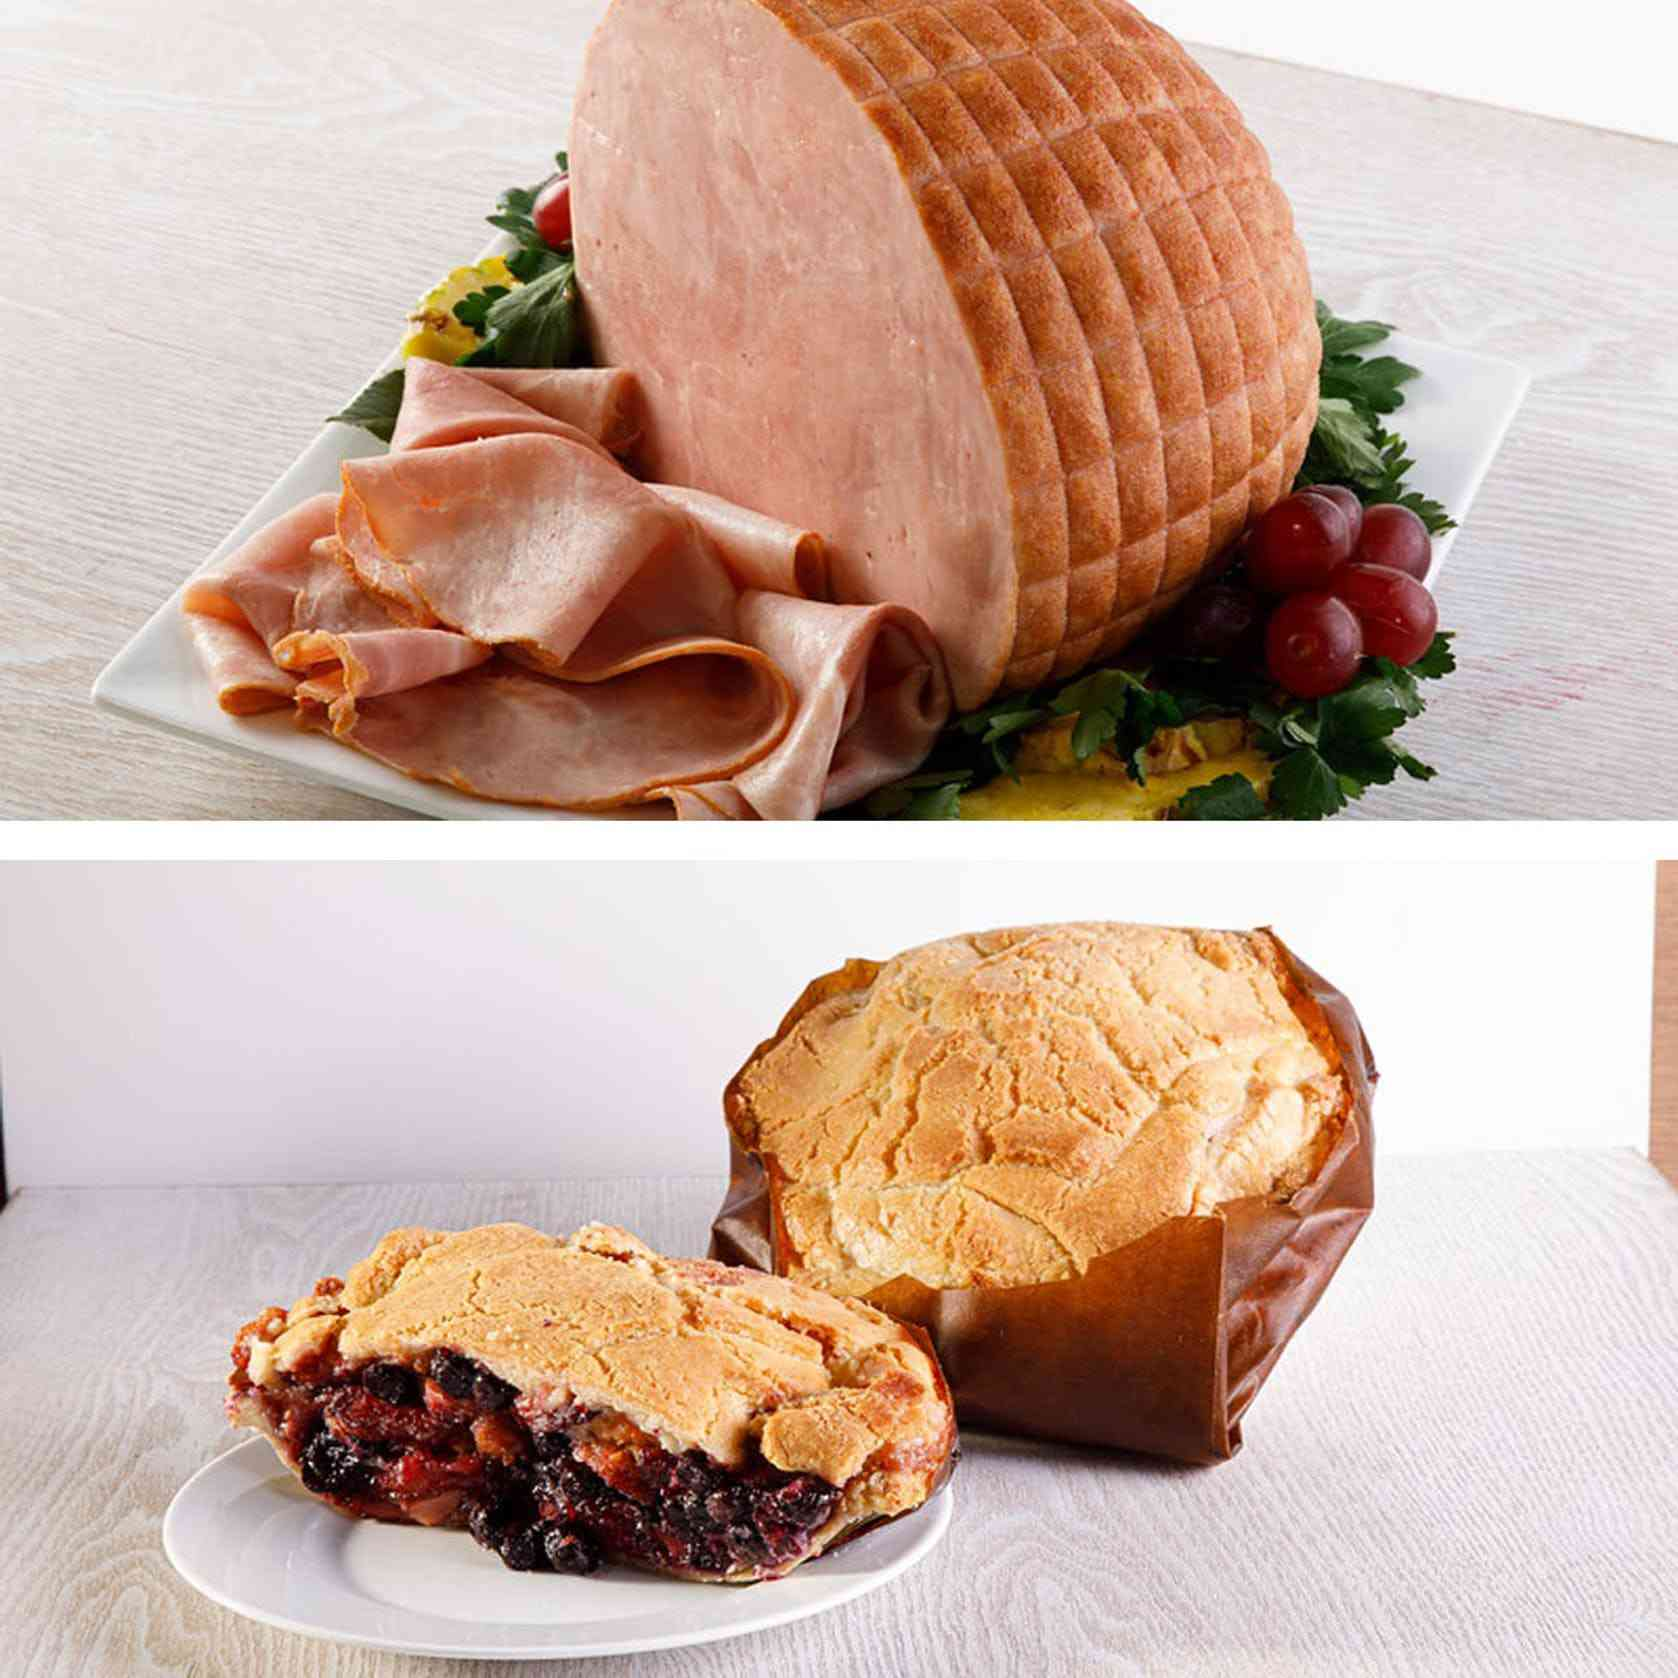 The Elegant Farmer Half Ham and Apple Pie Baked in a Paper Bag